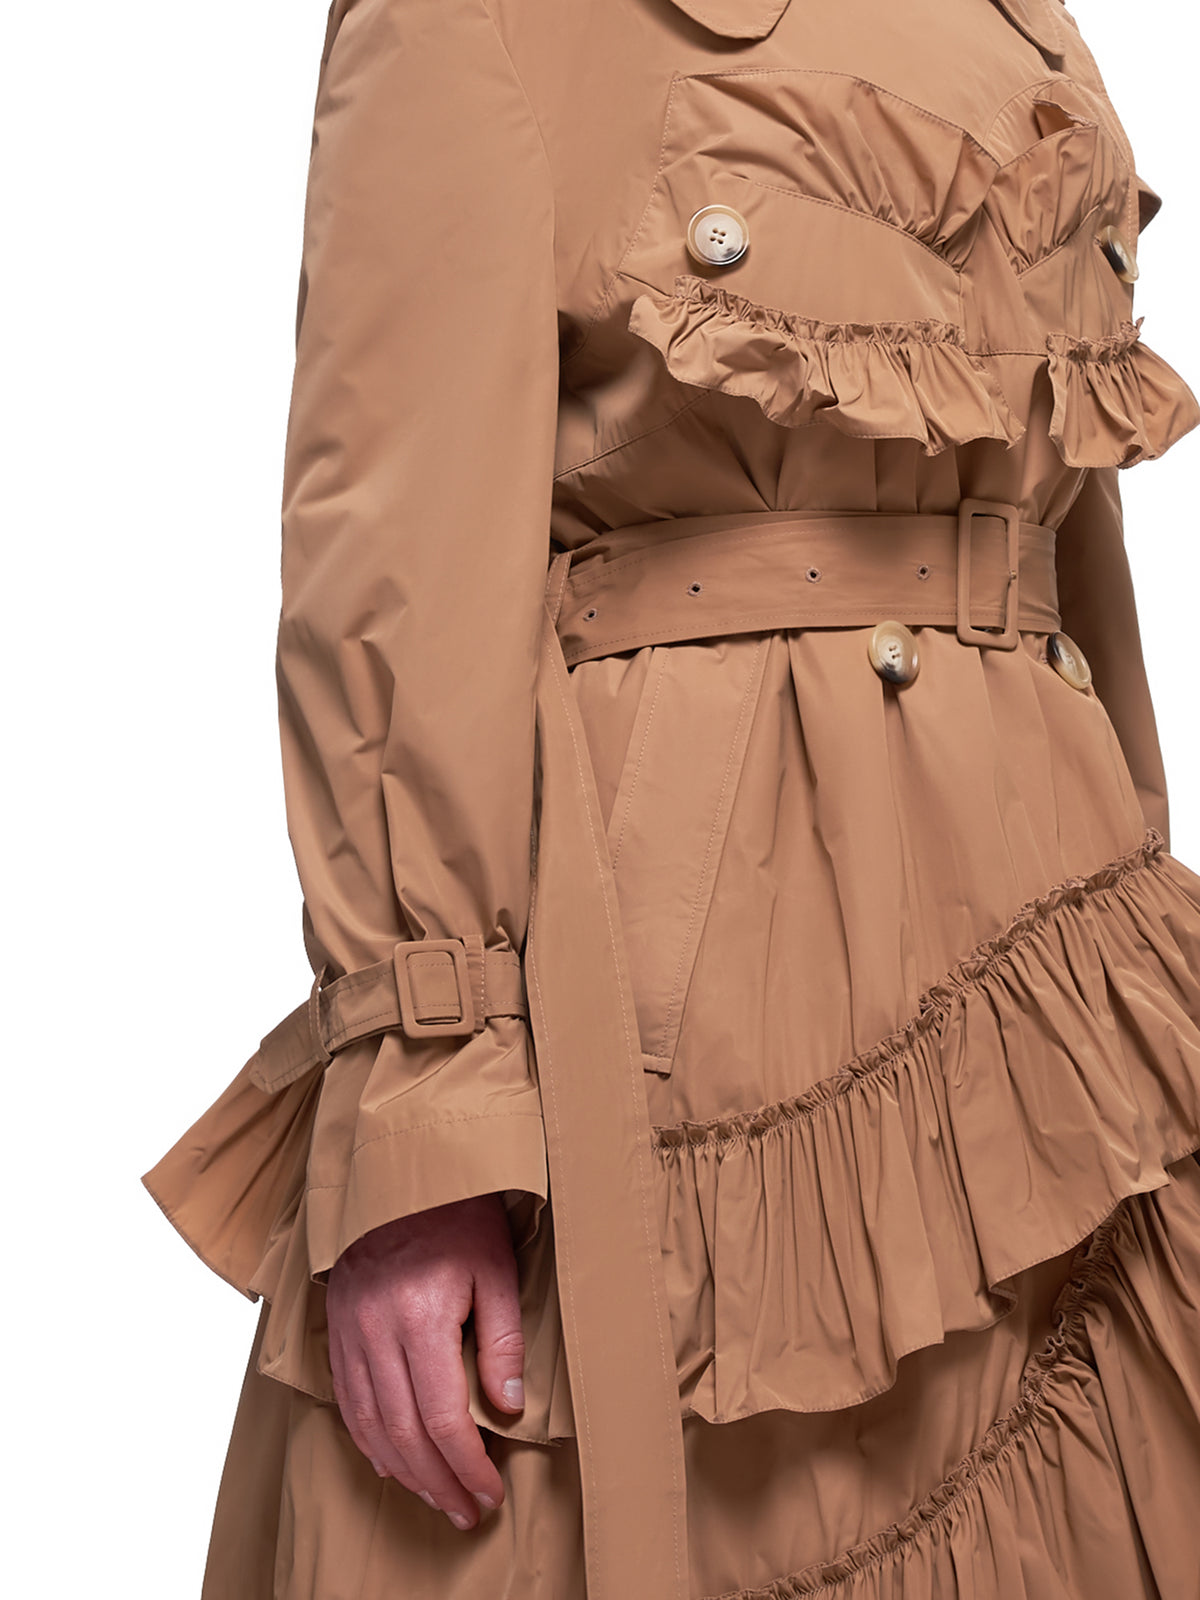 Frilled Trench Coat (3289-0355-TAN)